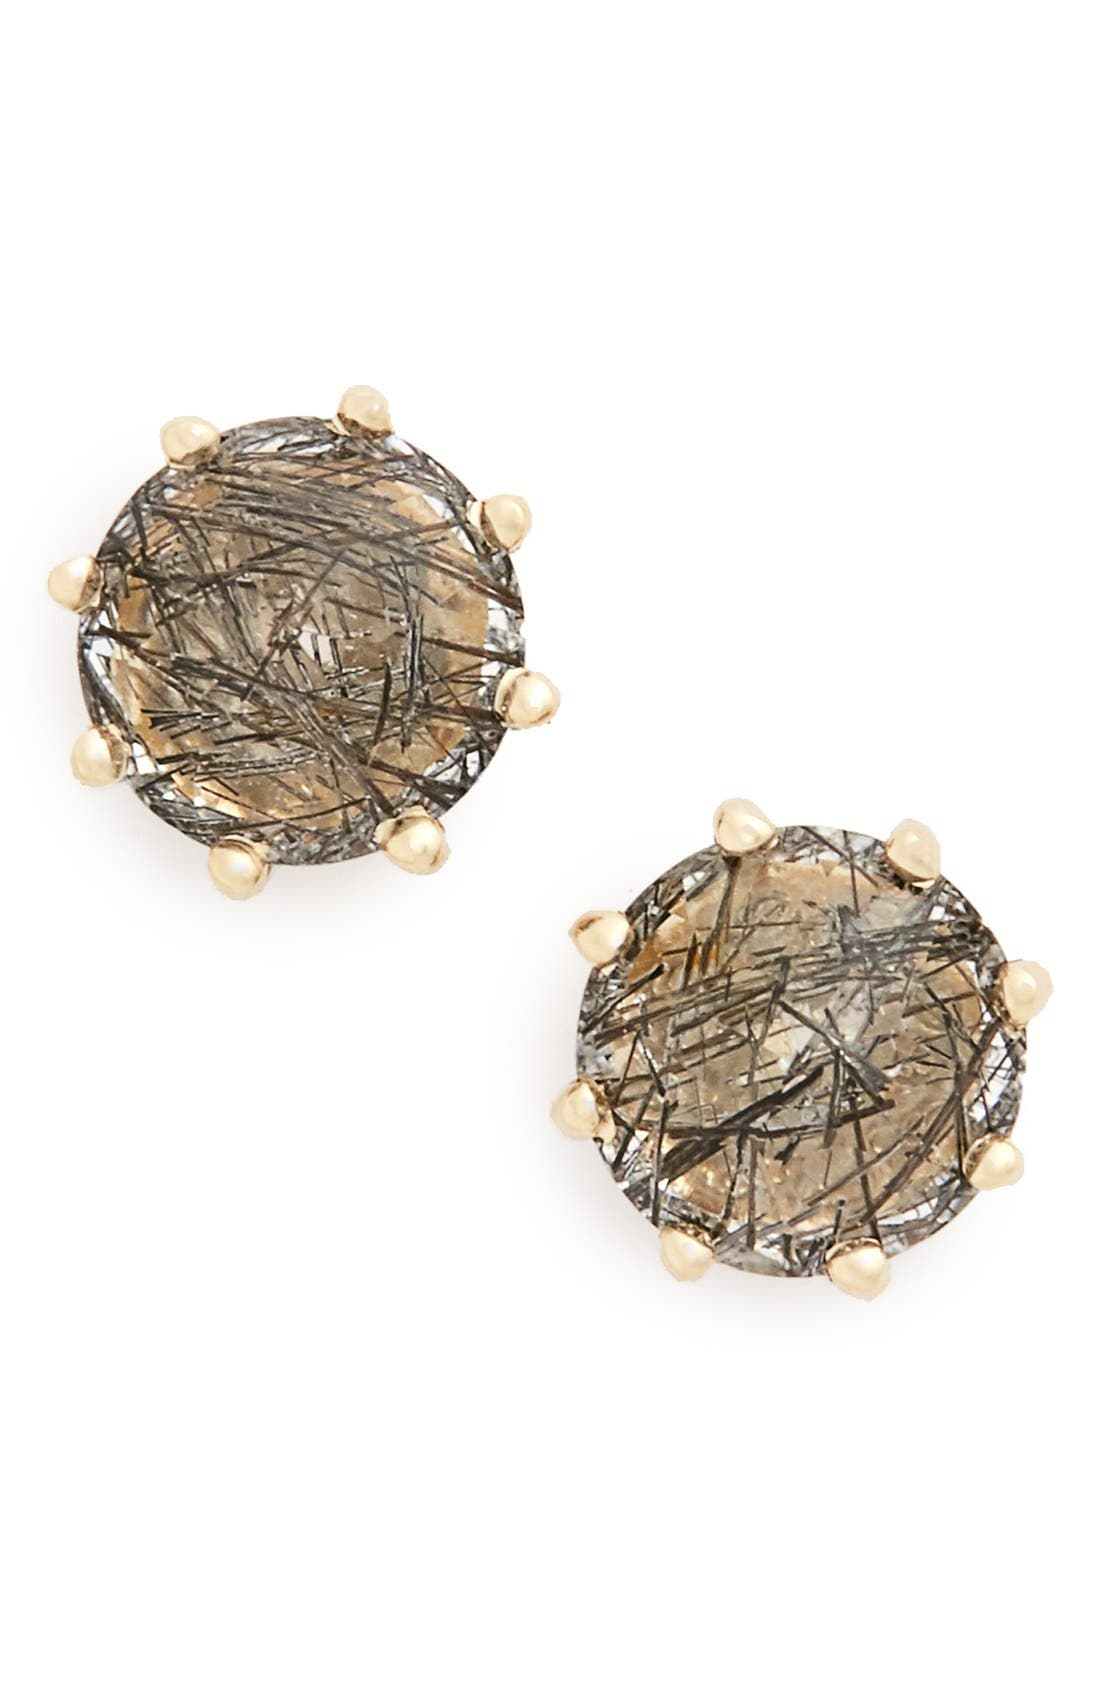 'Eleanor' Black Rutilated Quartz Stud Earrings,                         Main,                         color, 715